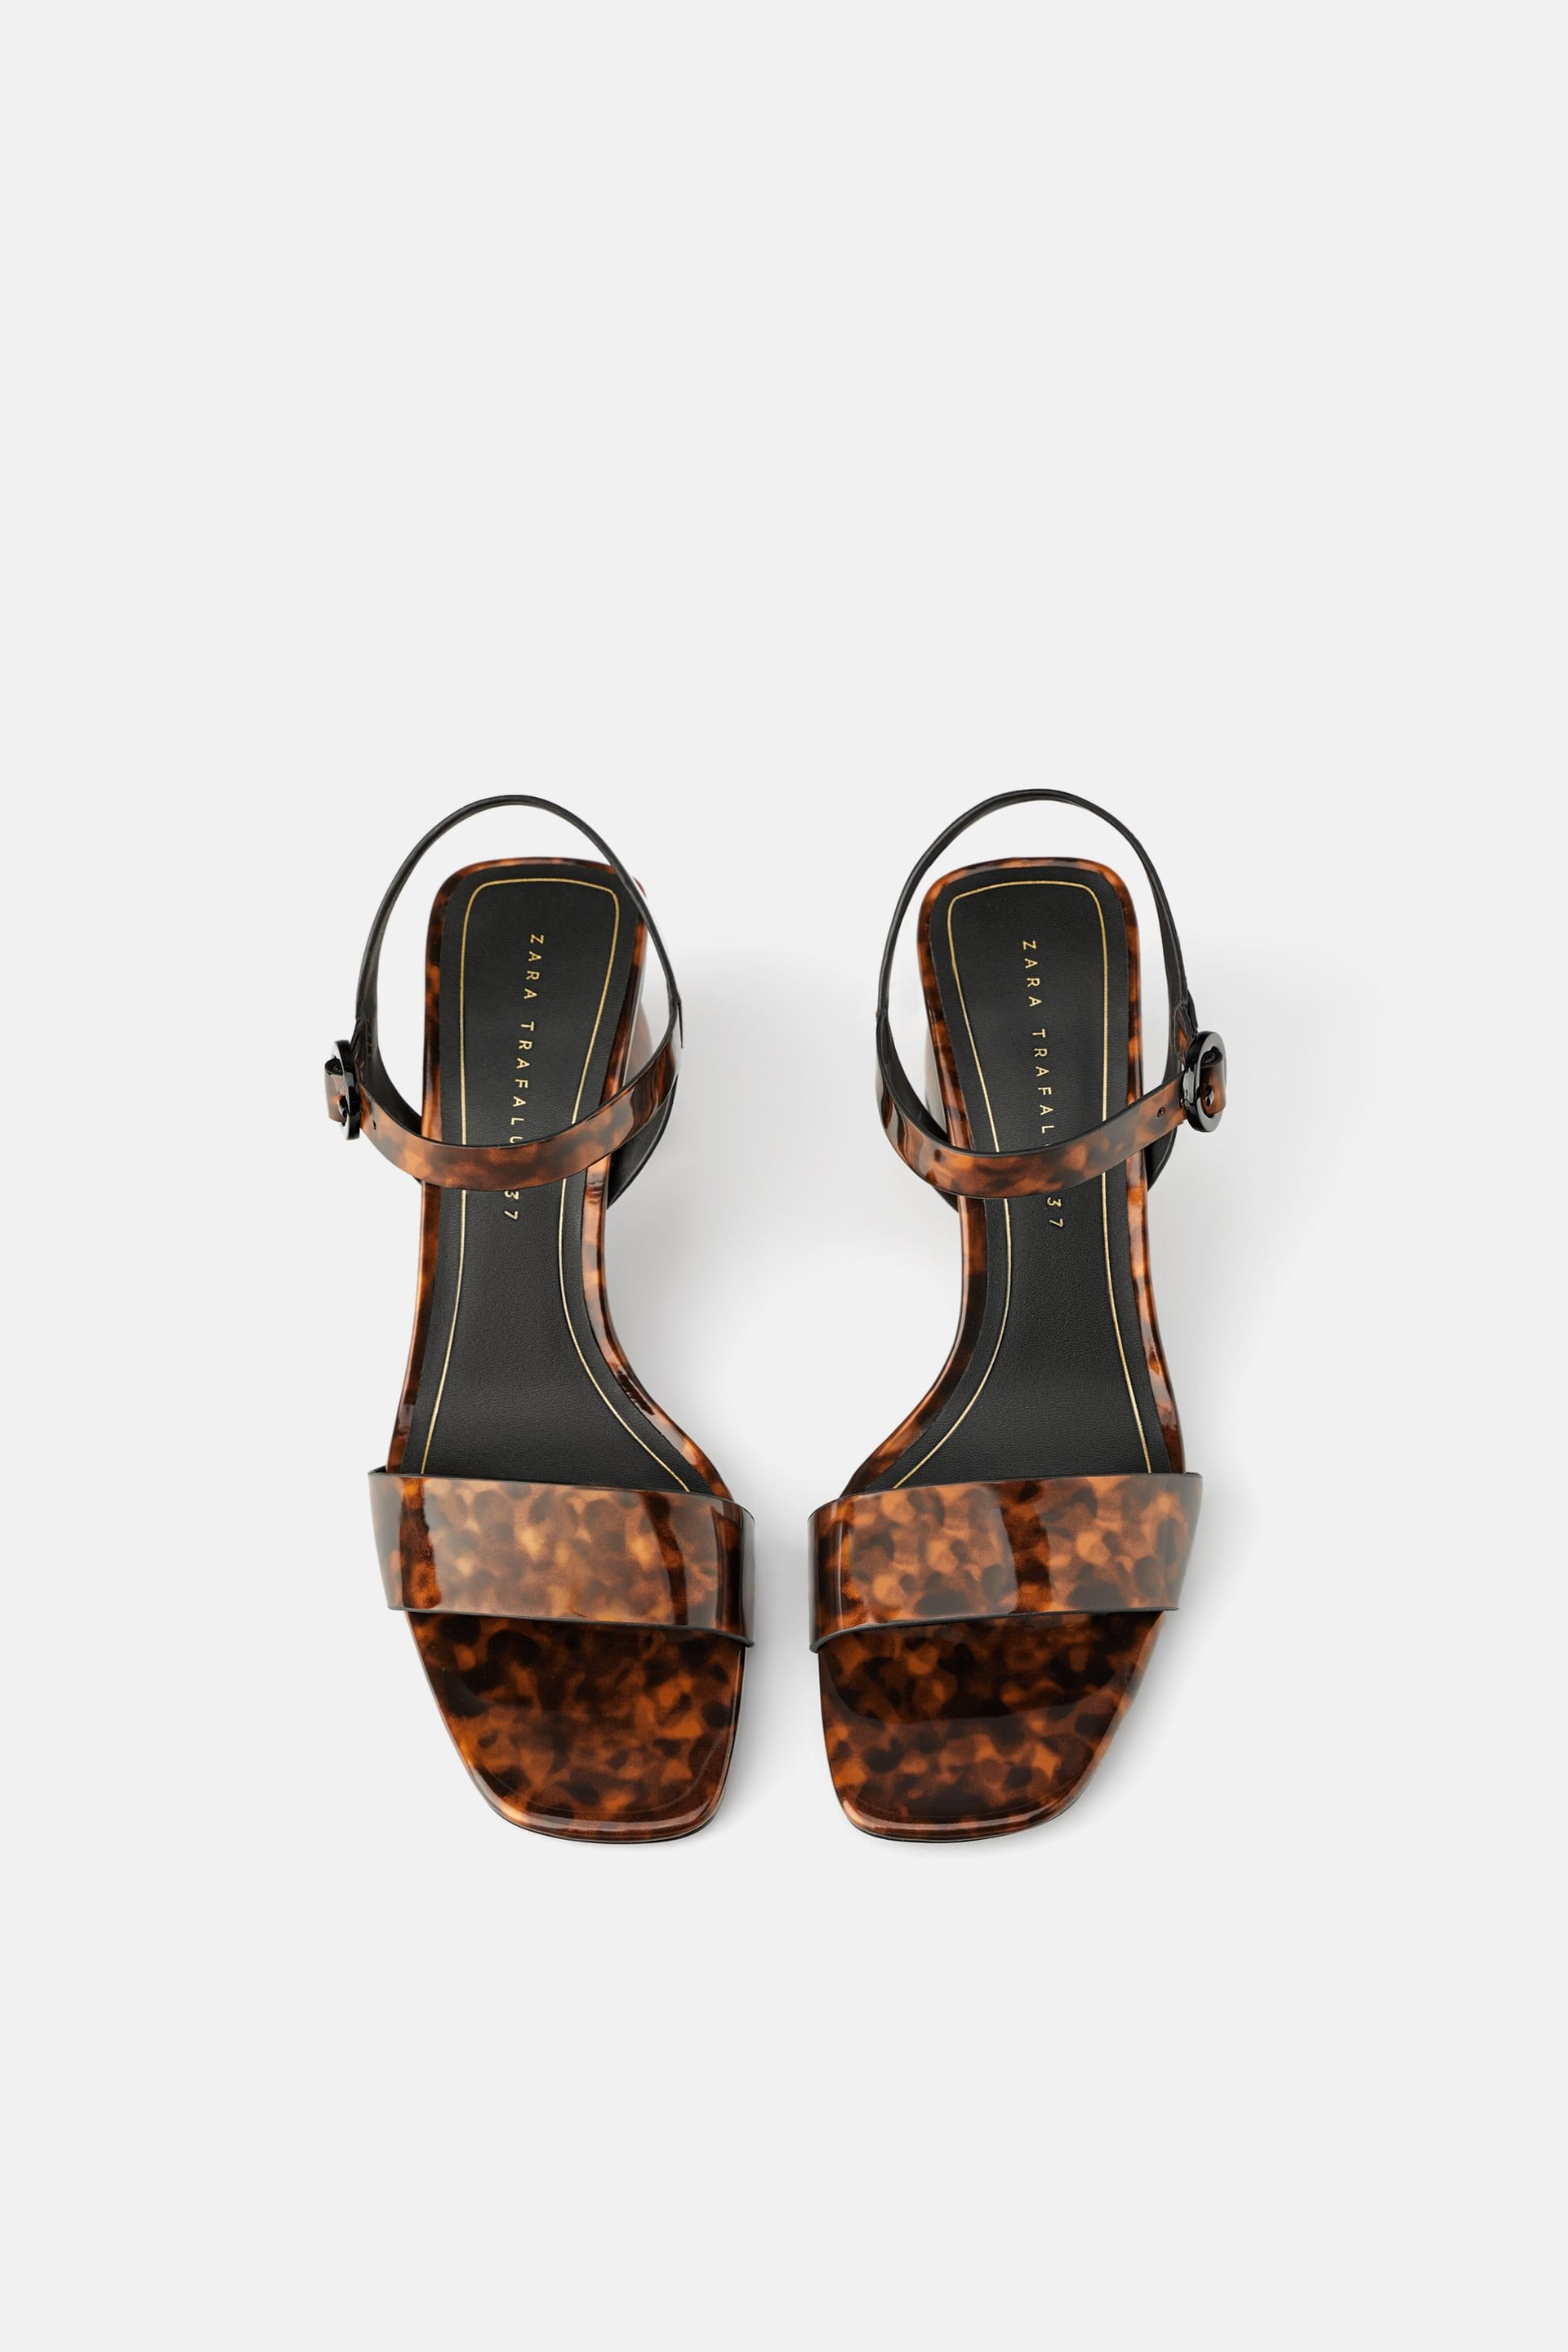 4a8b36186b54d Tortoiseshell wide heeled sandals in 2019 | Wear it | Fashion heels ...